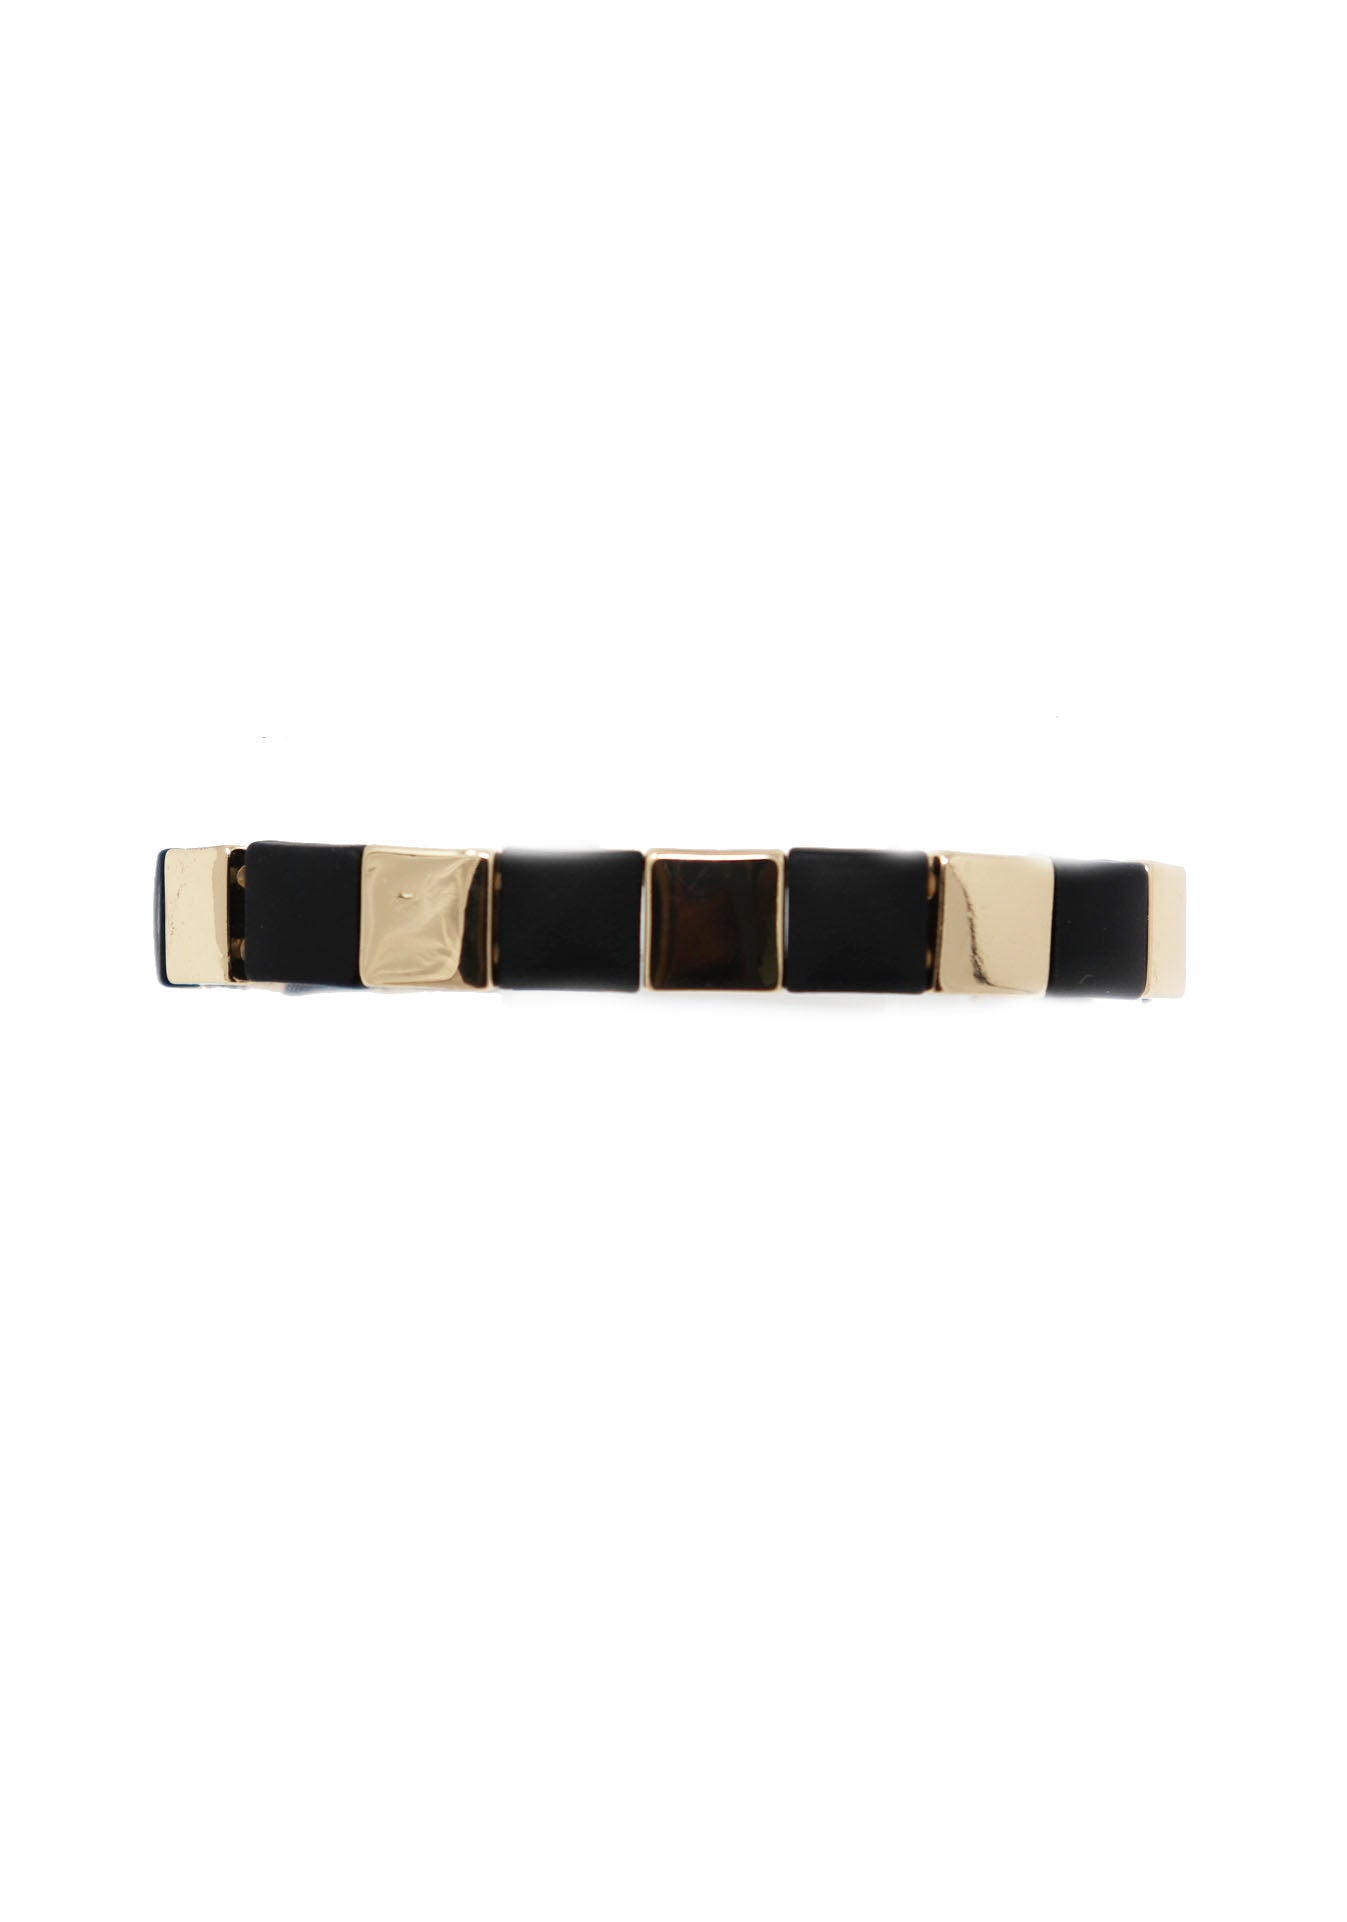 Black and Gold Stretchy Bracelet - Gabrielle's Biloxi